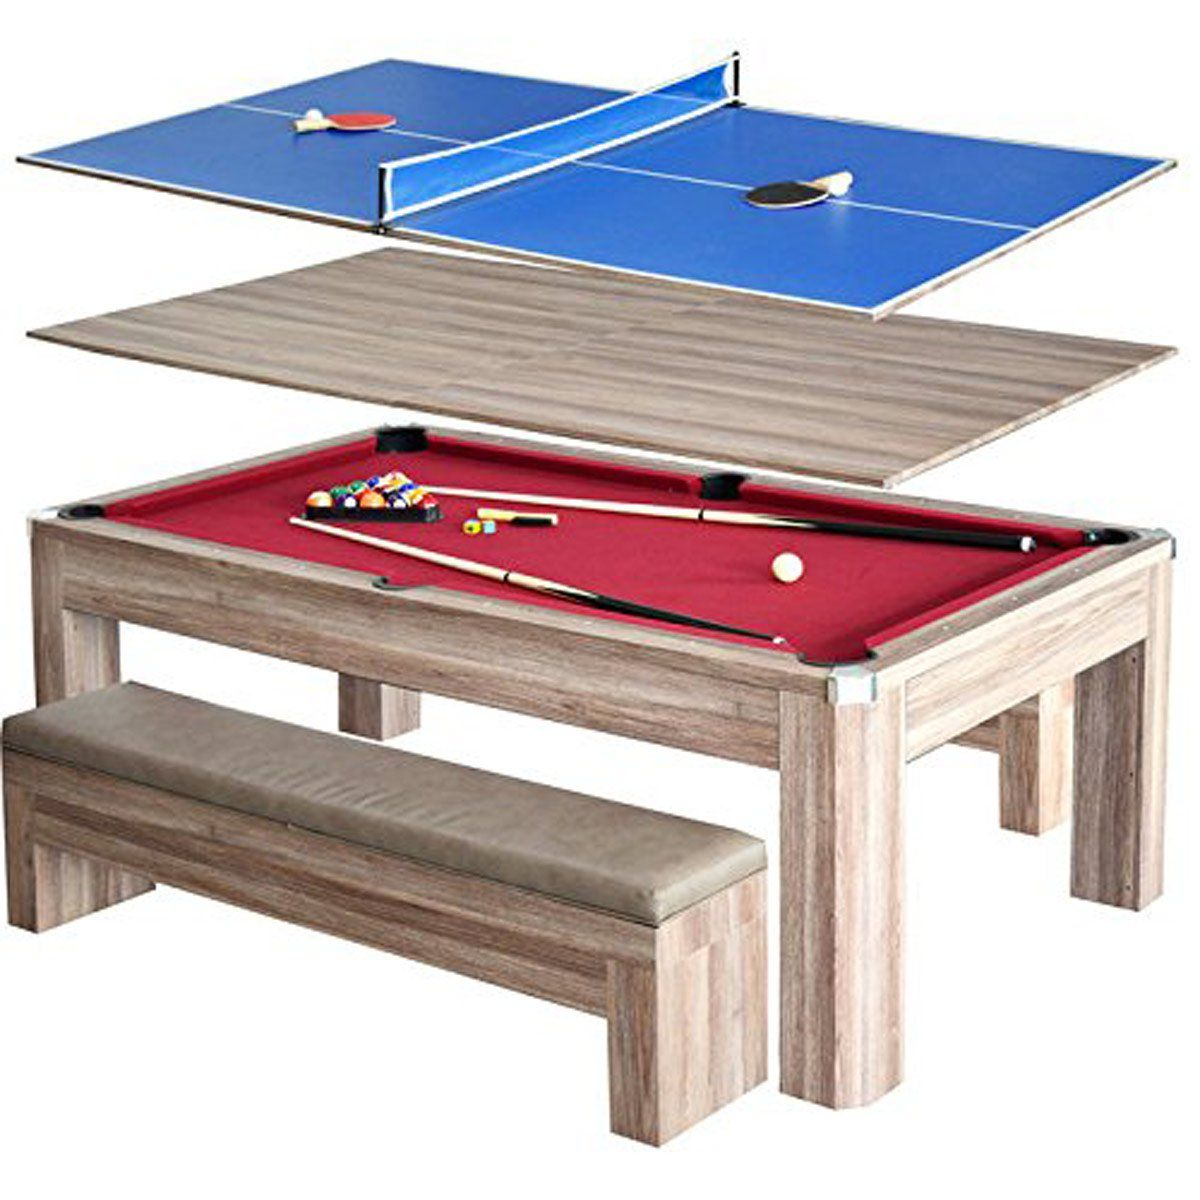 14 Picnic Tables You Have To See To Believe Pool Table Dining